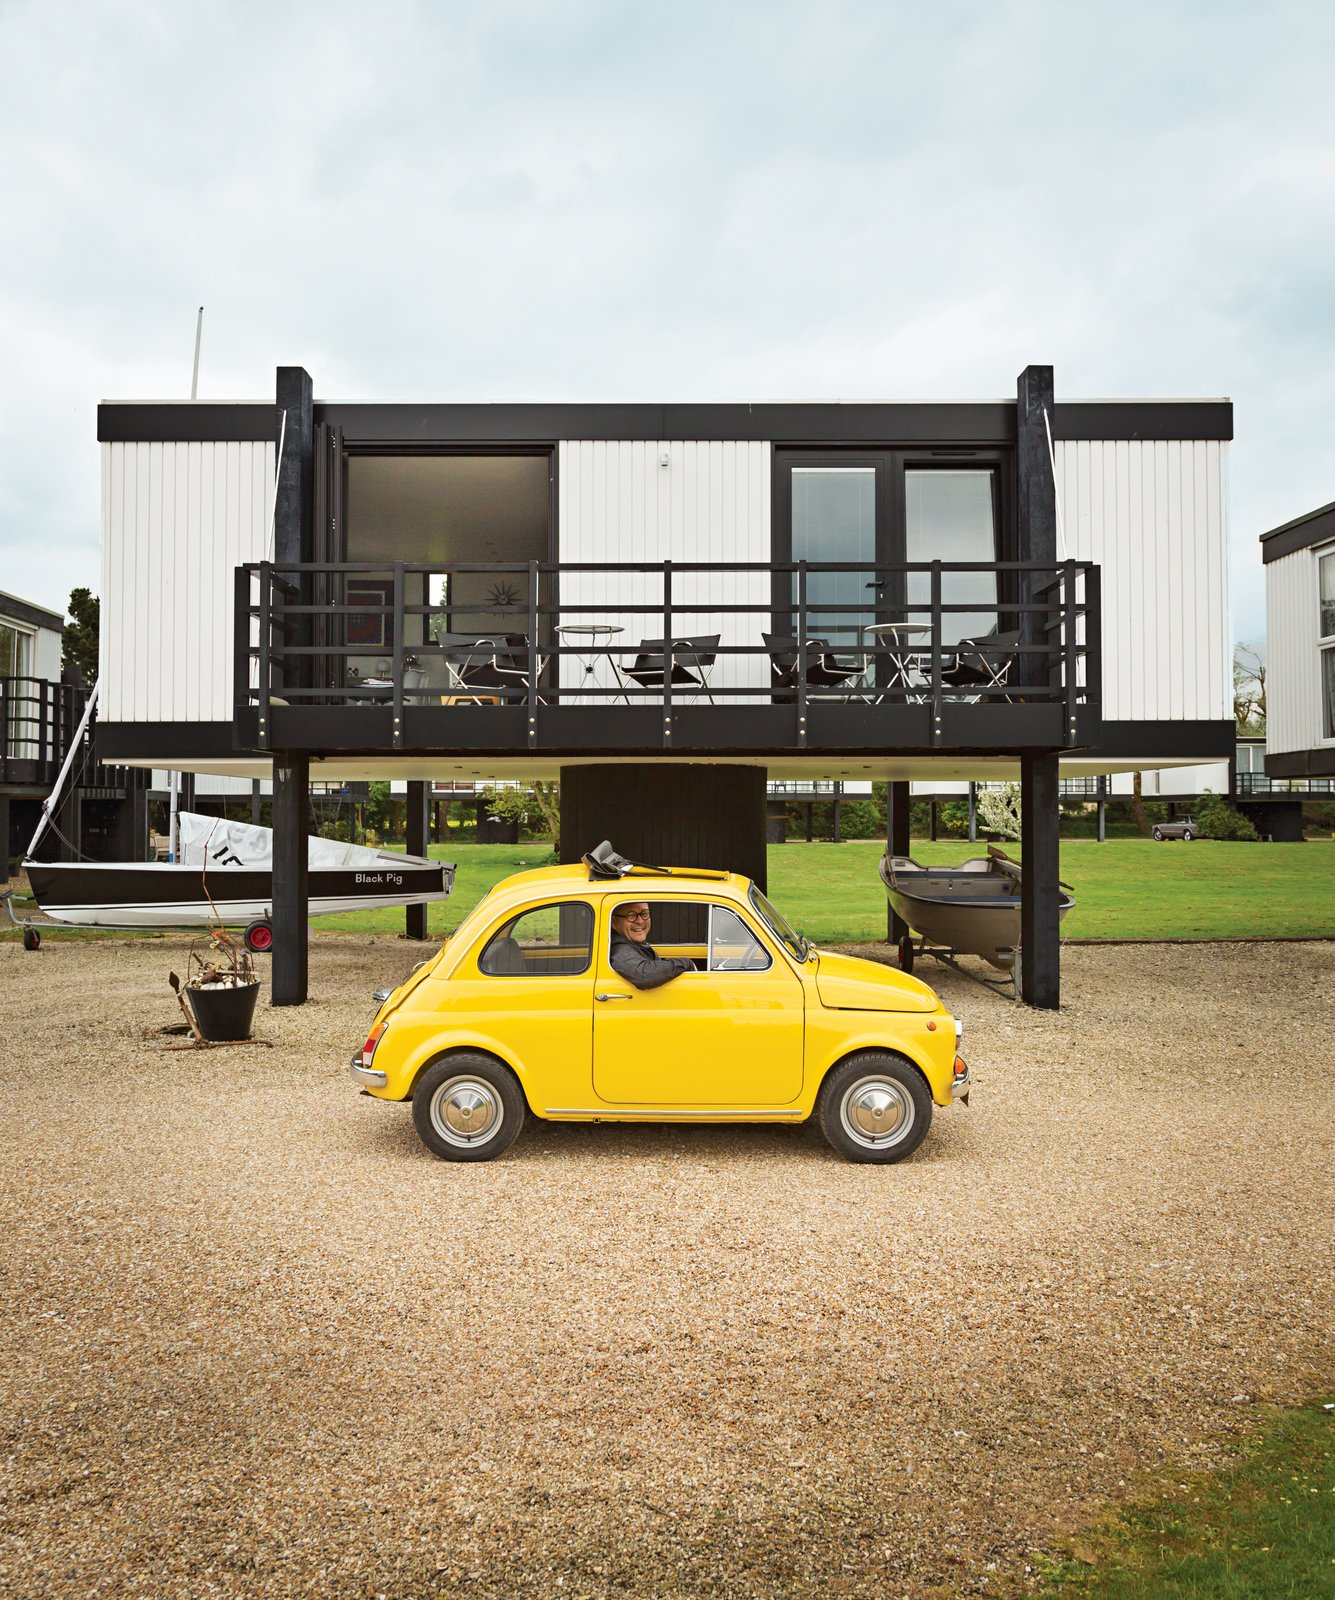 Articles about elevated deckhouse england on Dwell.com